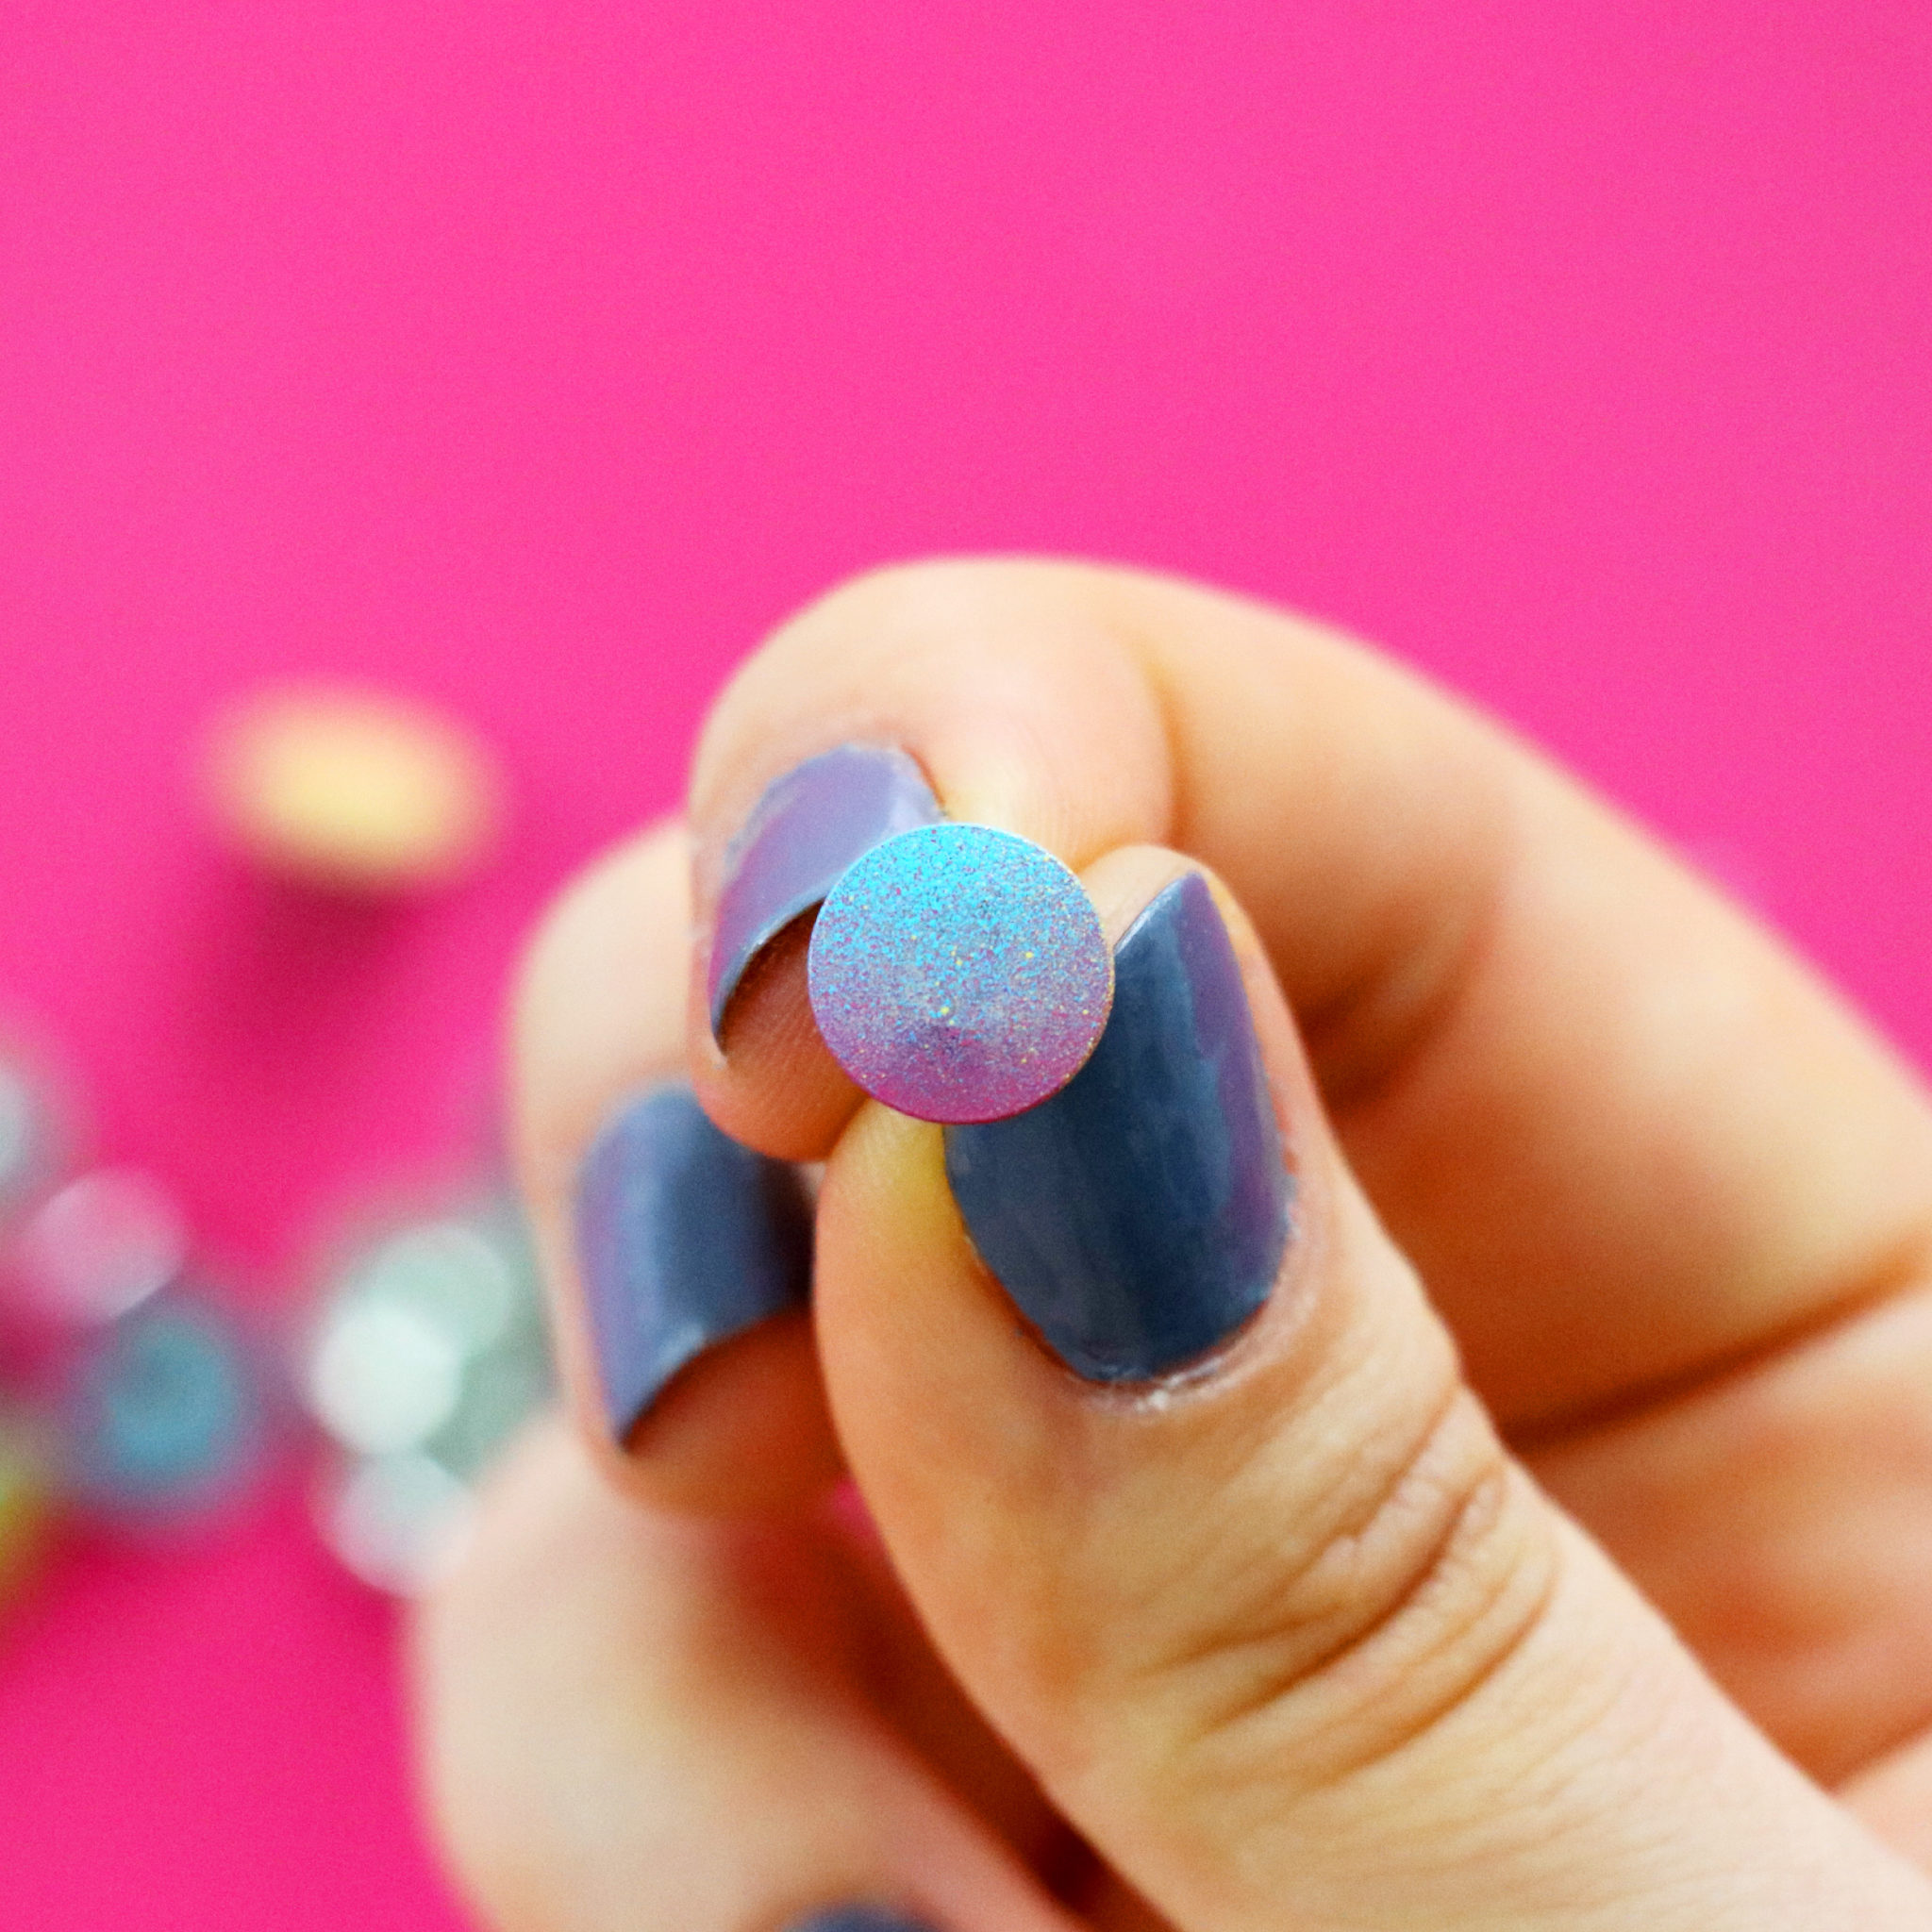 thumbtack_closeup